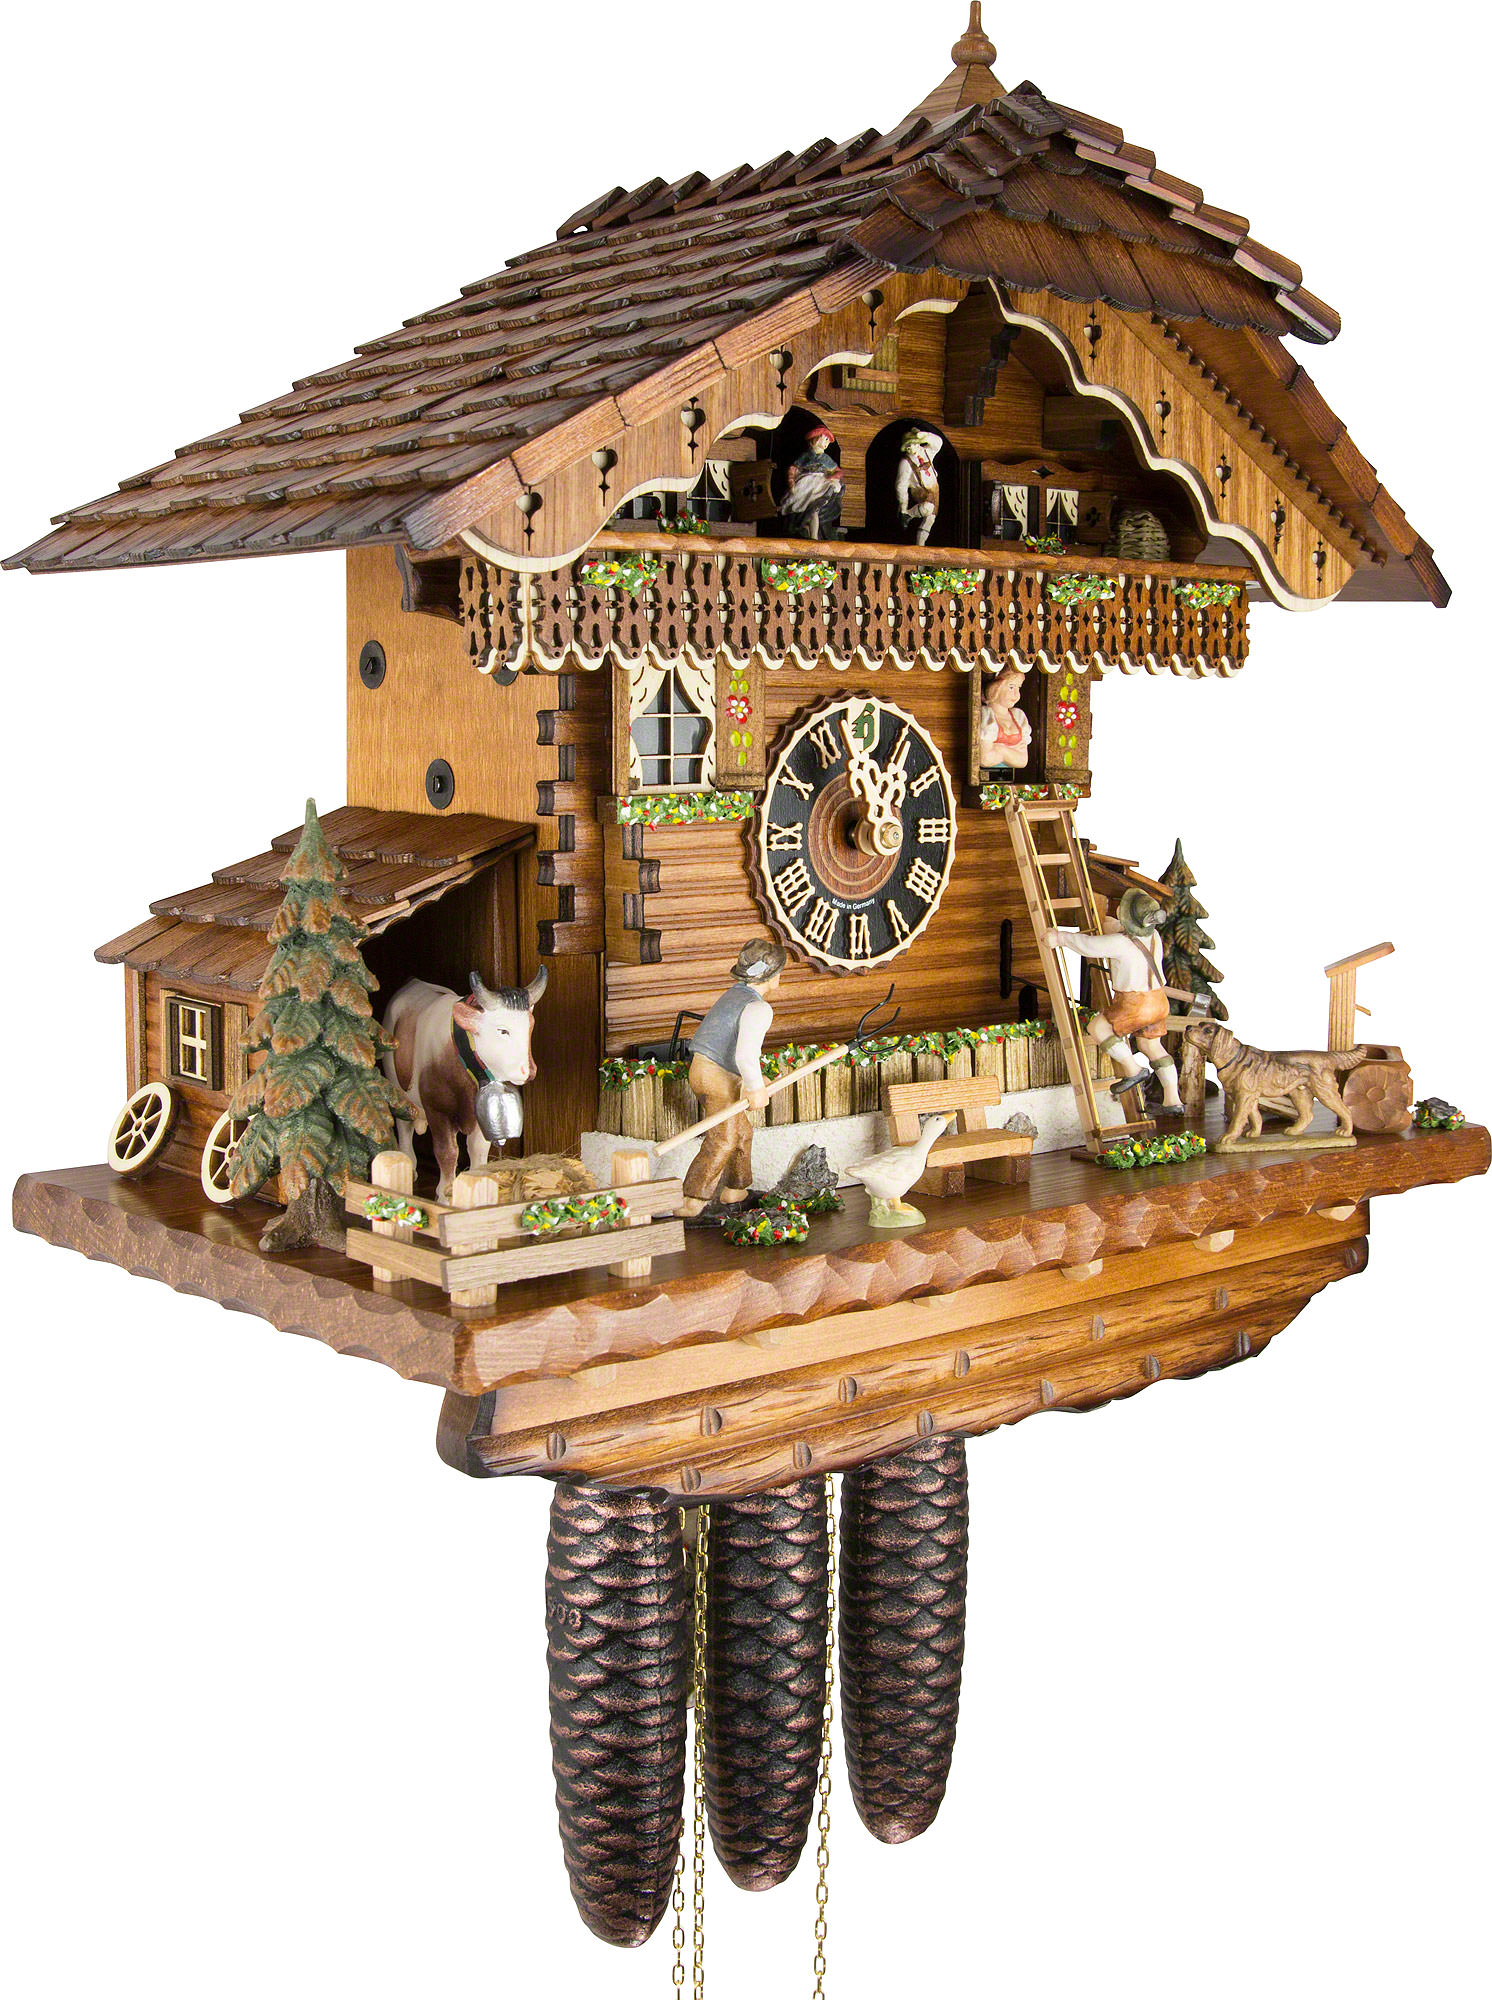 Cuckoo Clock 8 Day Movement Chalet Style 44cm By H Nes